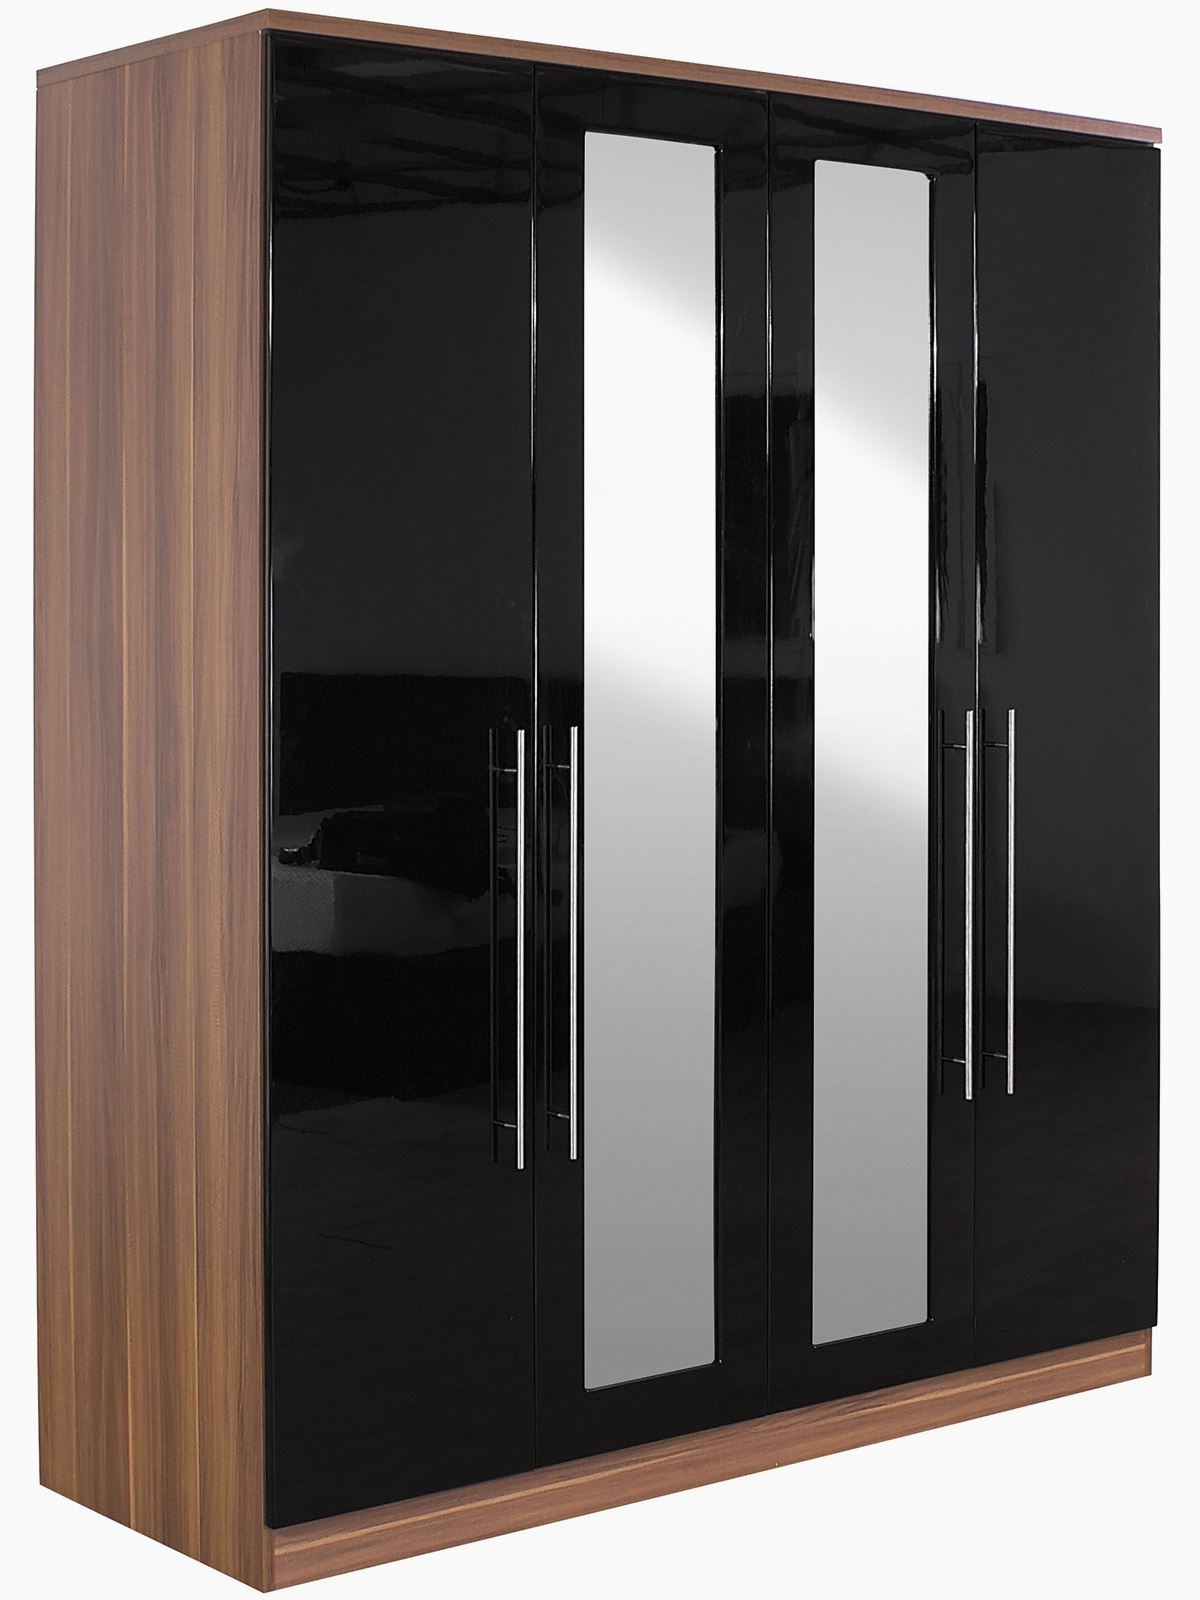 Pink High Gloss Wardrobes Intended For Most Current Black High Gloss Wardrobes Sliding Wardrobe Pink Cheap That Can (View 11 of 15)